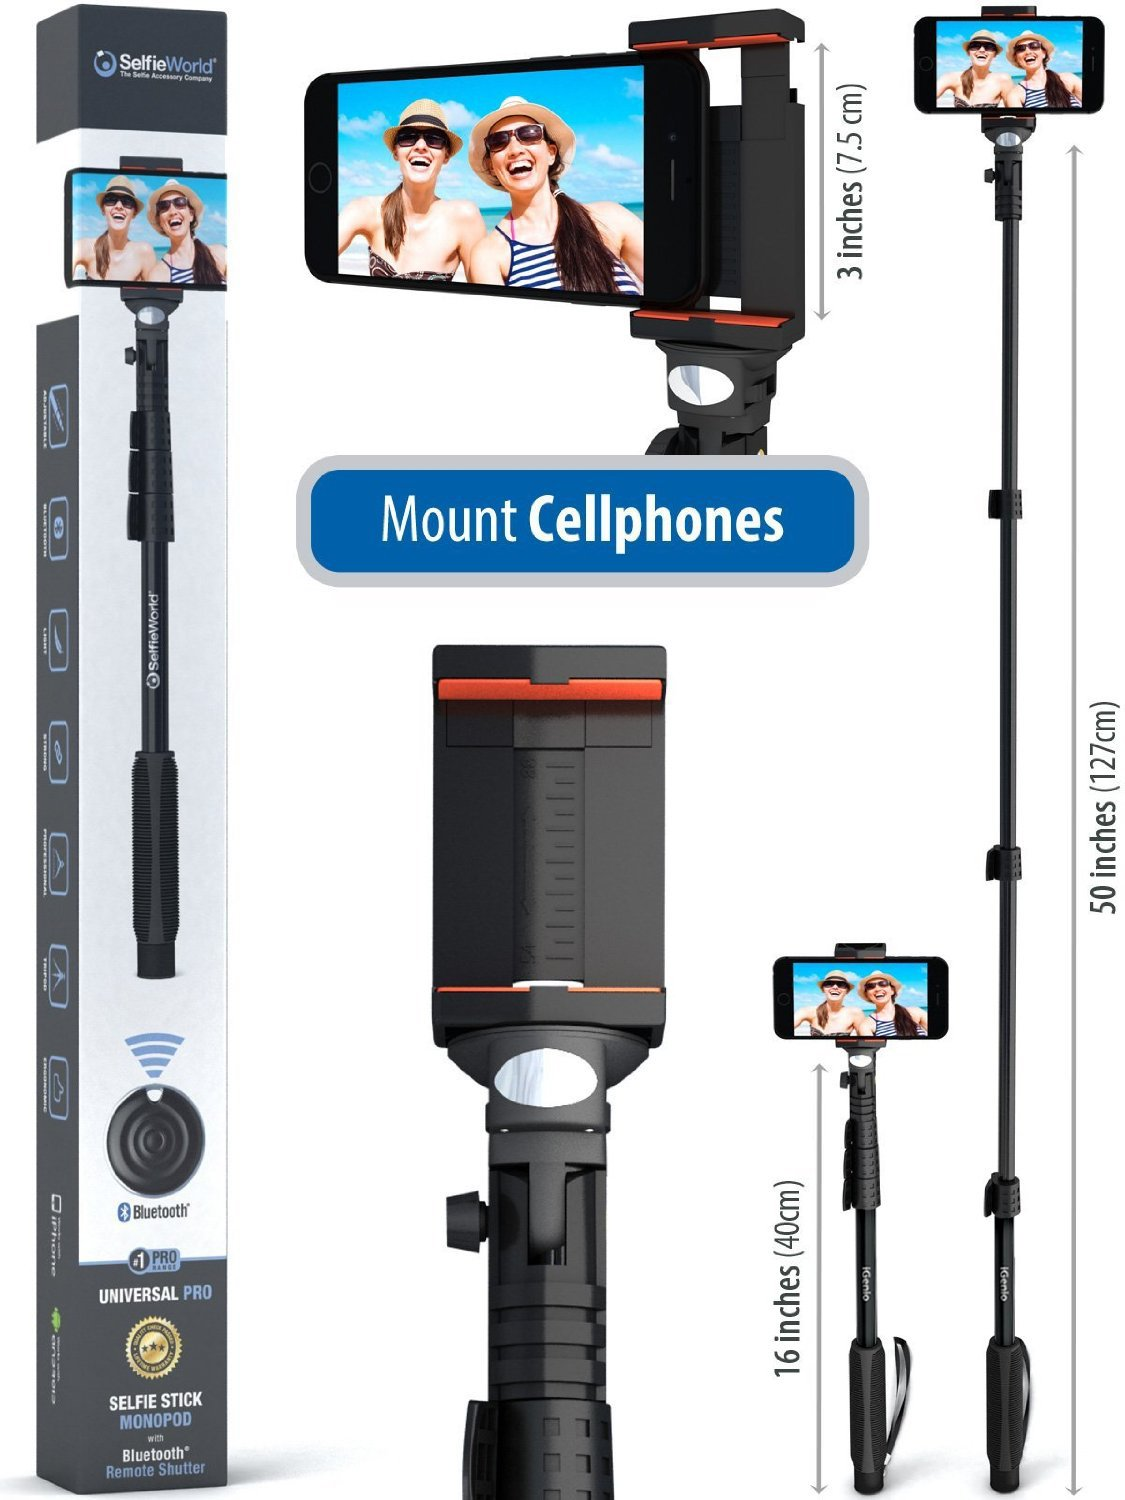 Professional 10-In-1 Monopod / Selfie Stick For GoPro Hero, iPhone, Samsung Galaxy, Digital Cameras With Bluetooth Remote Shutter (Cellphones Only) by Selfie World (Image #4)